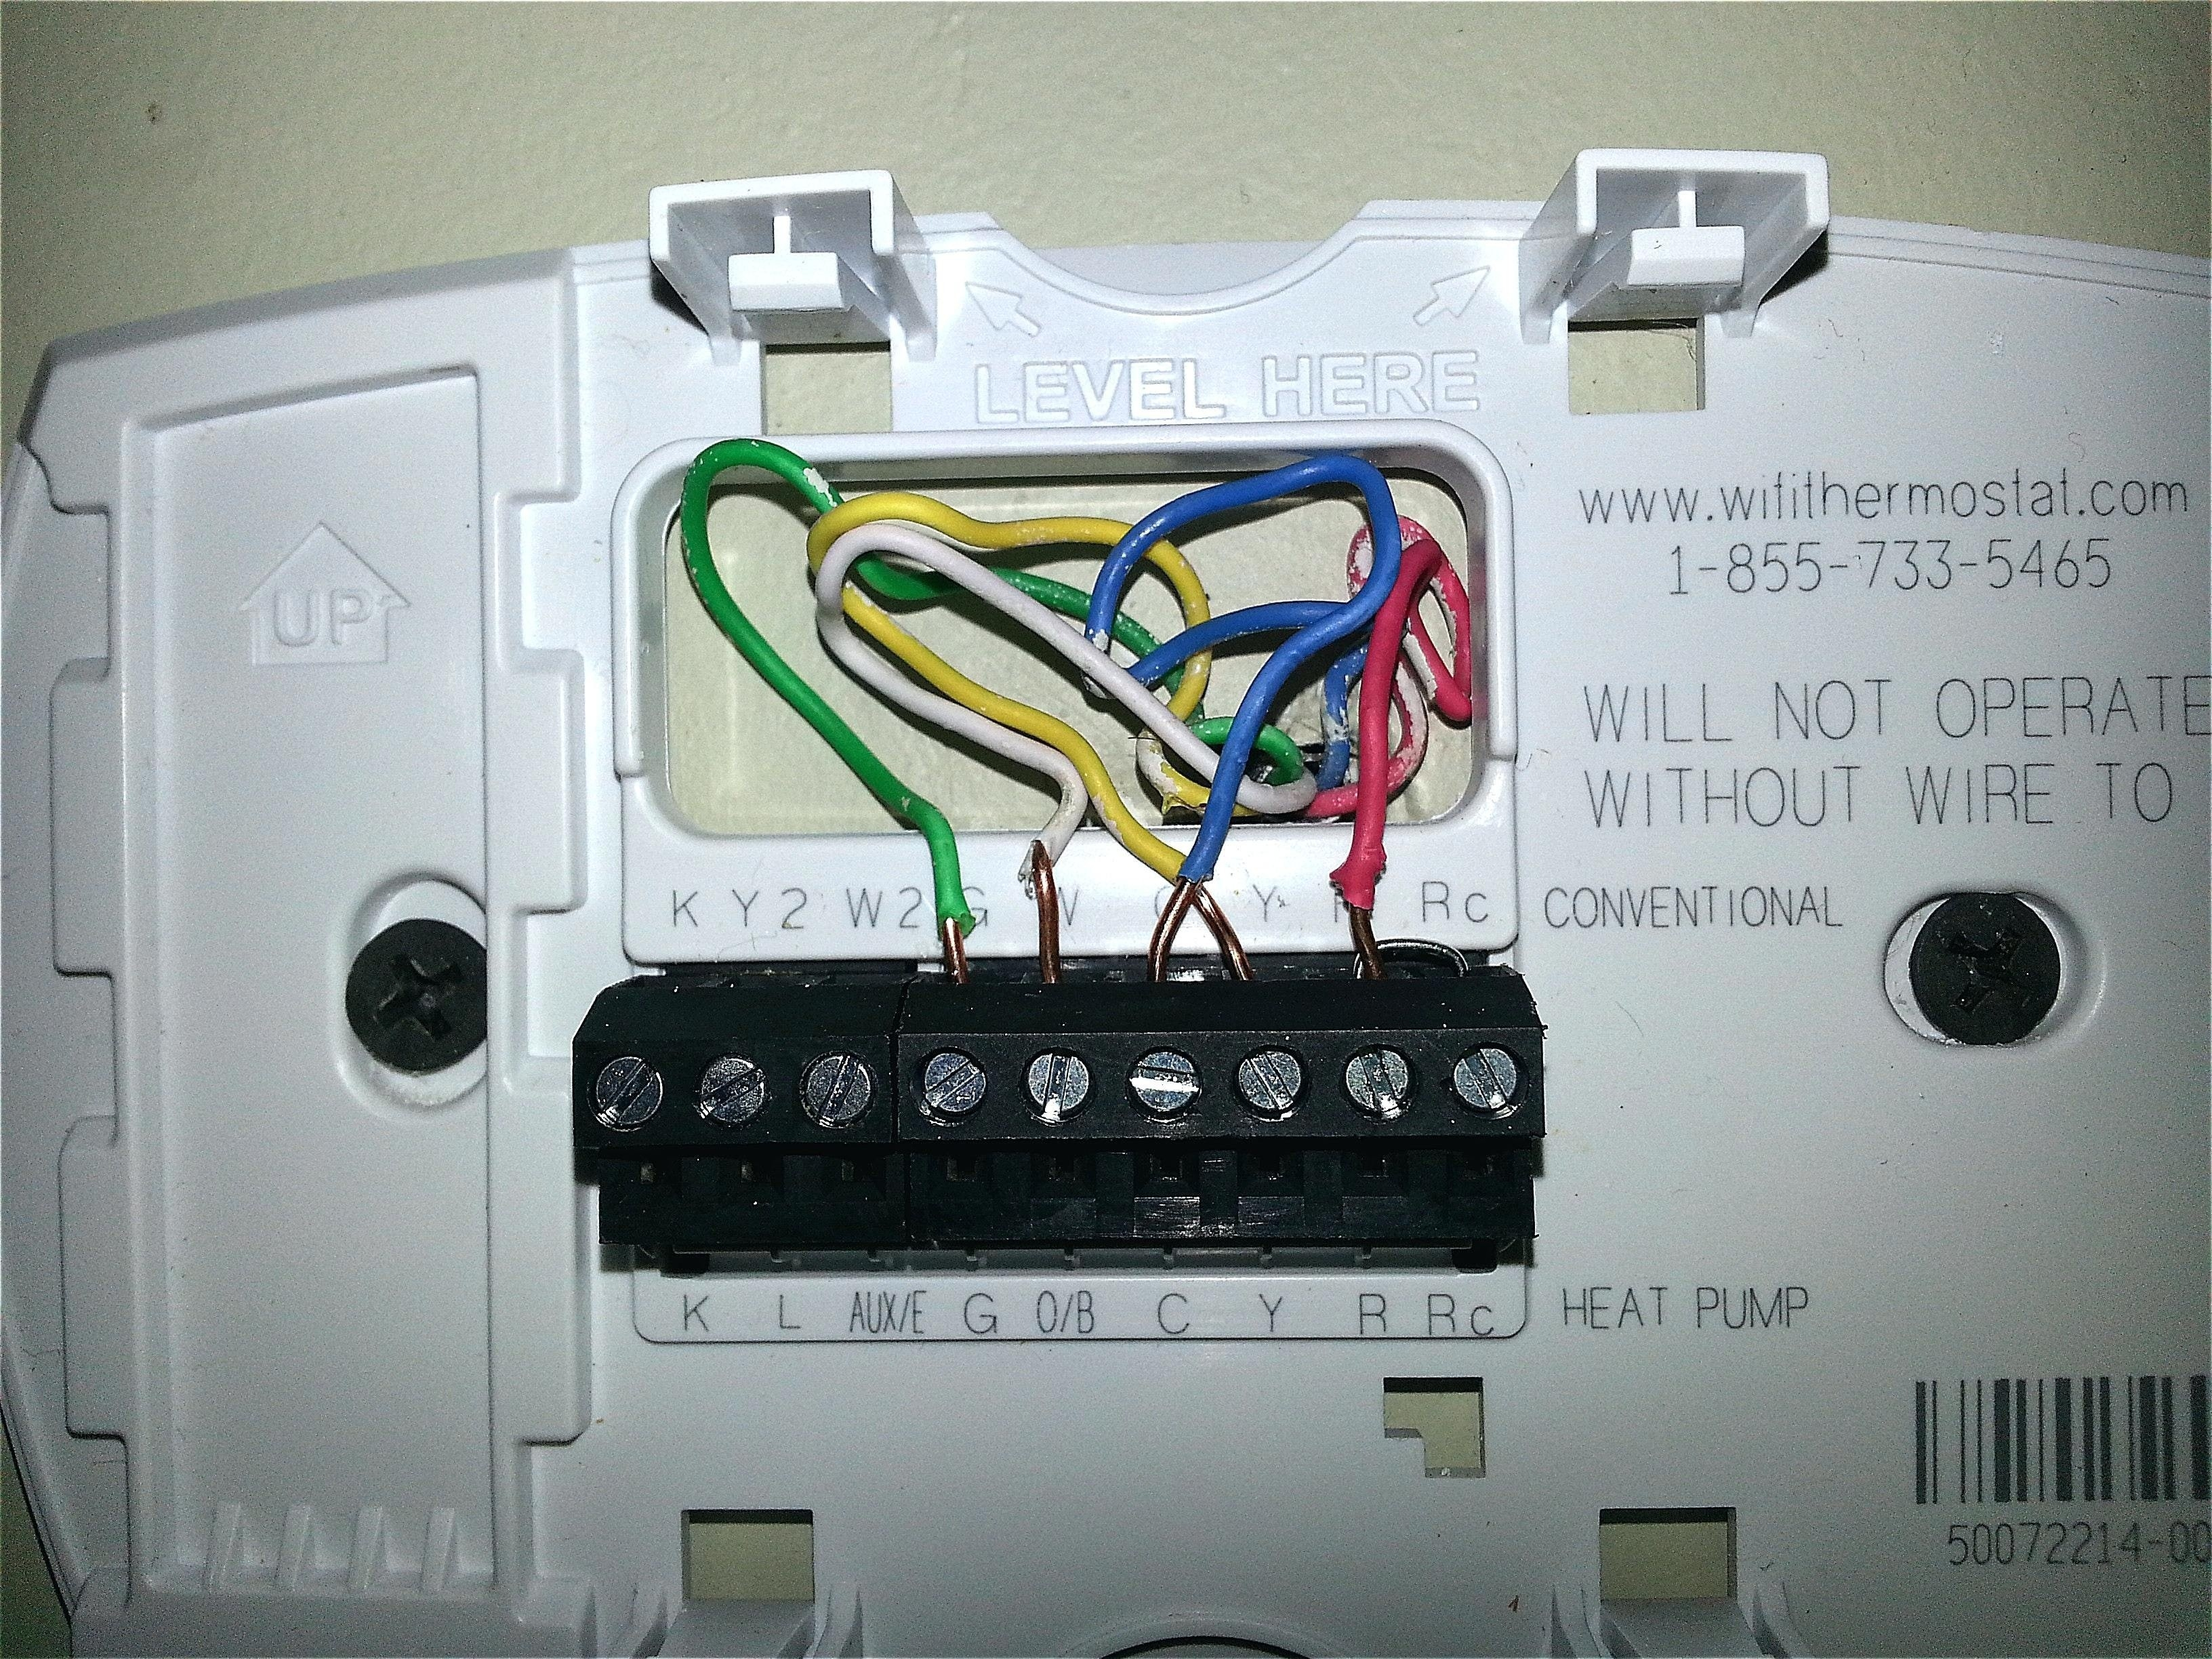 Honeywell Thermostat Troubleshooting We answered each query